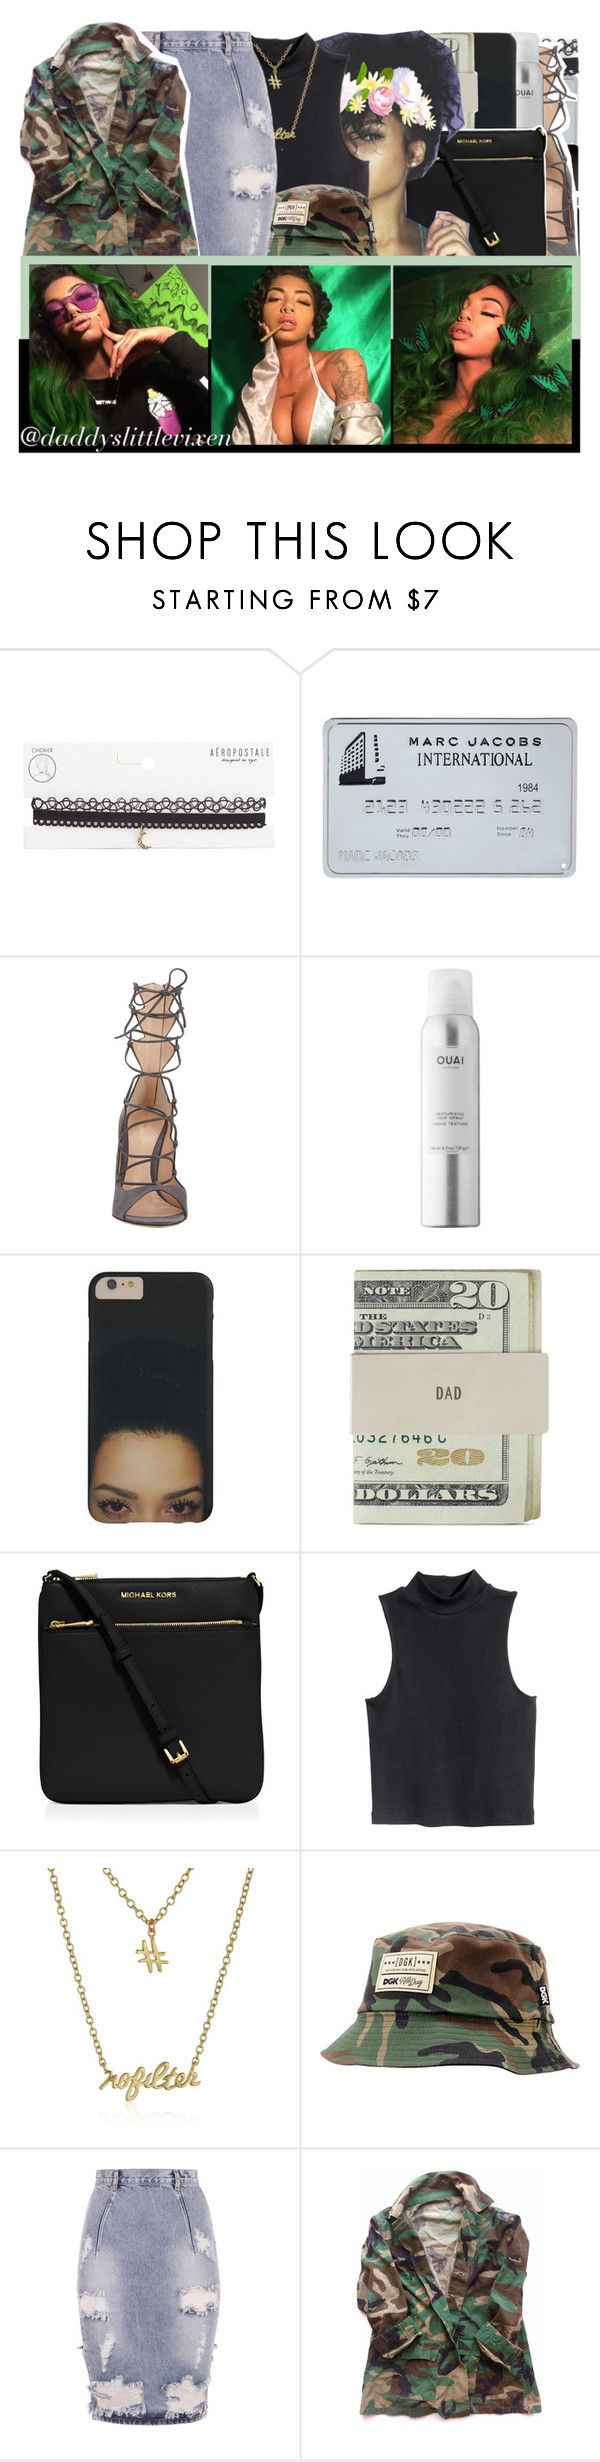 """""""🌐 hit the blunt then hit you up 🌐"""" by daddyslittlevixen ❤ liked on Polyvore featuring Aéropostale, Gianvito Rossi, Ouai, Jack Spade, MICHAEL Michael Kors, H&M, Gorjana, DGK and OneTeaspoon"""